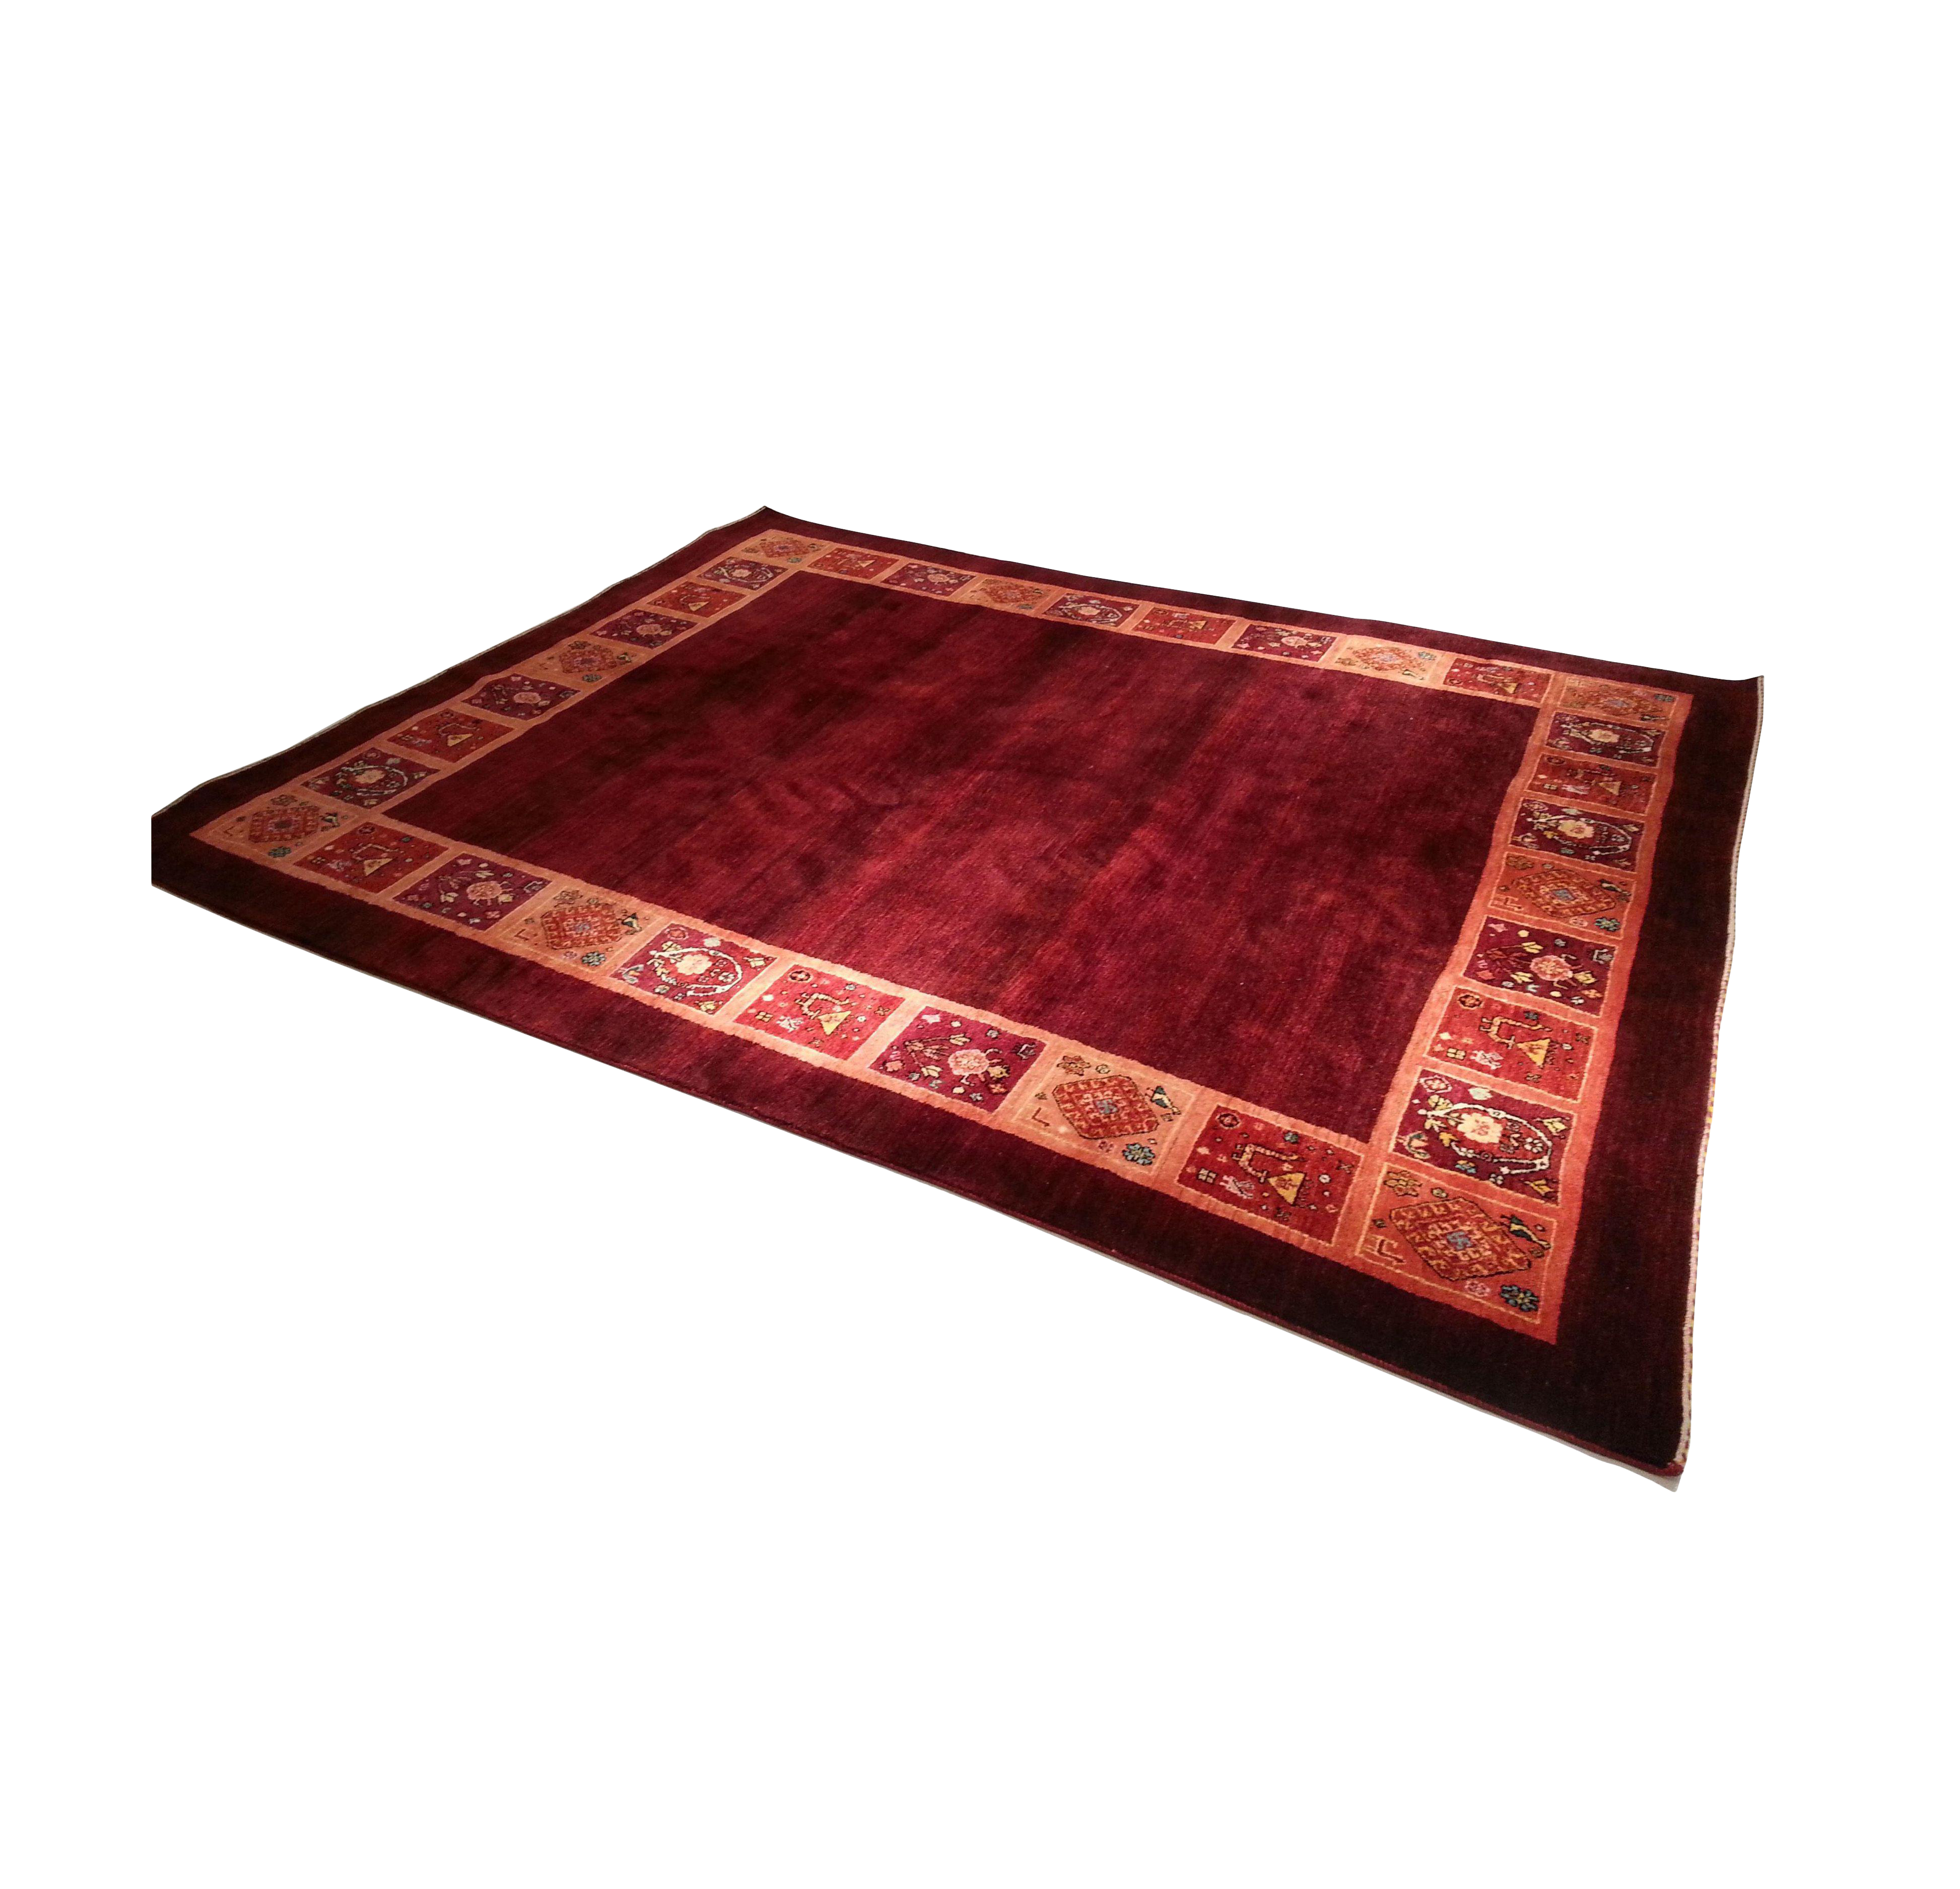 Hd Buttercup Rugs Home Decor